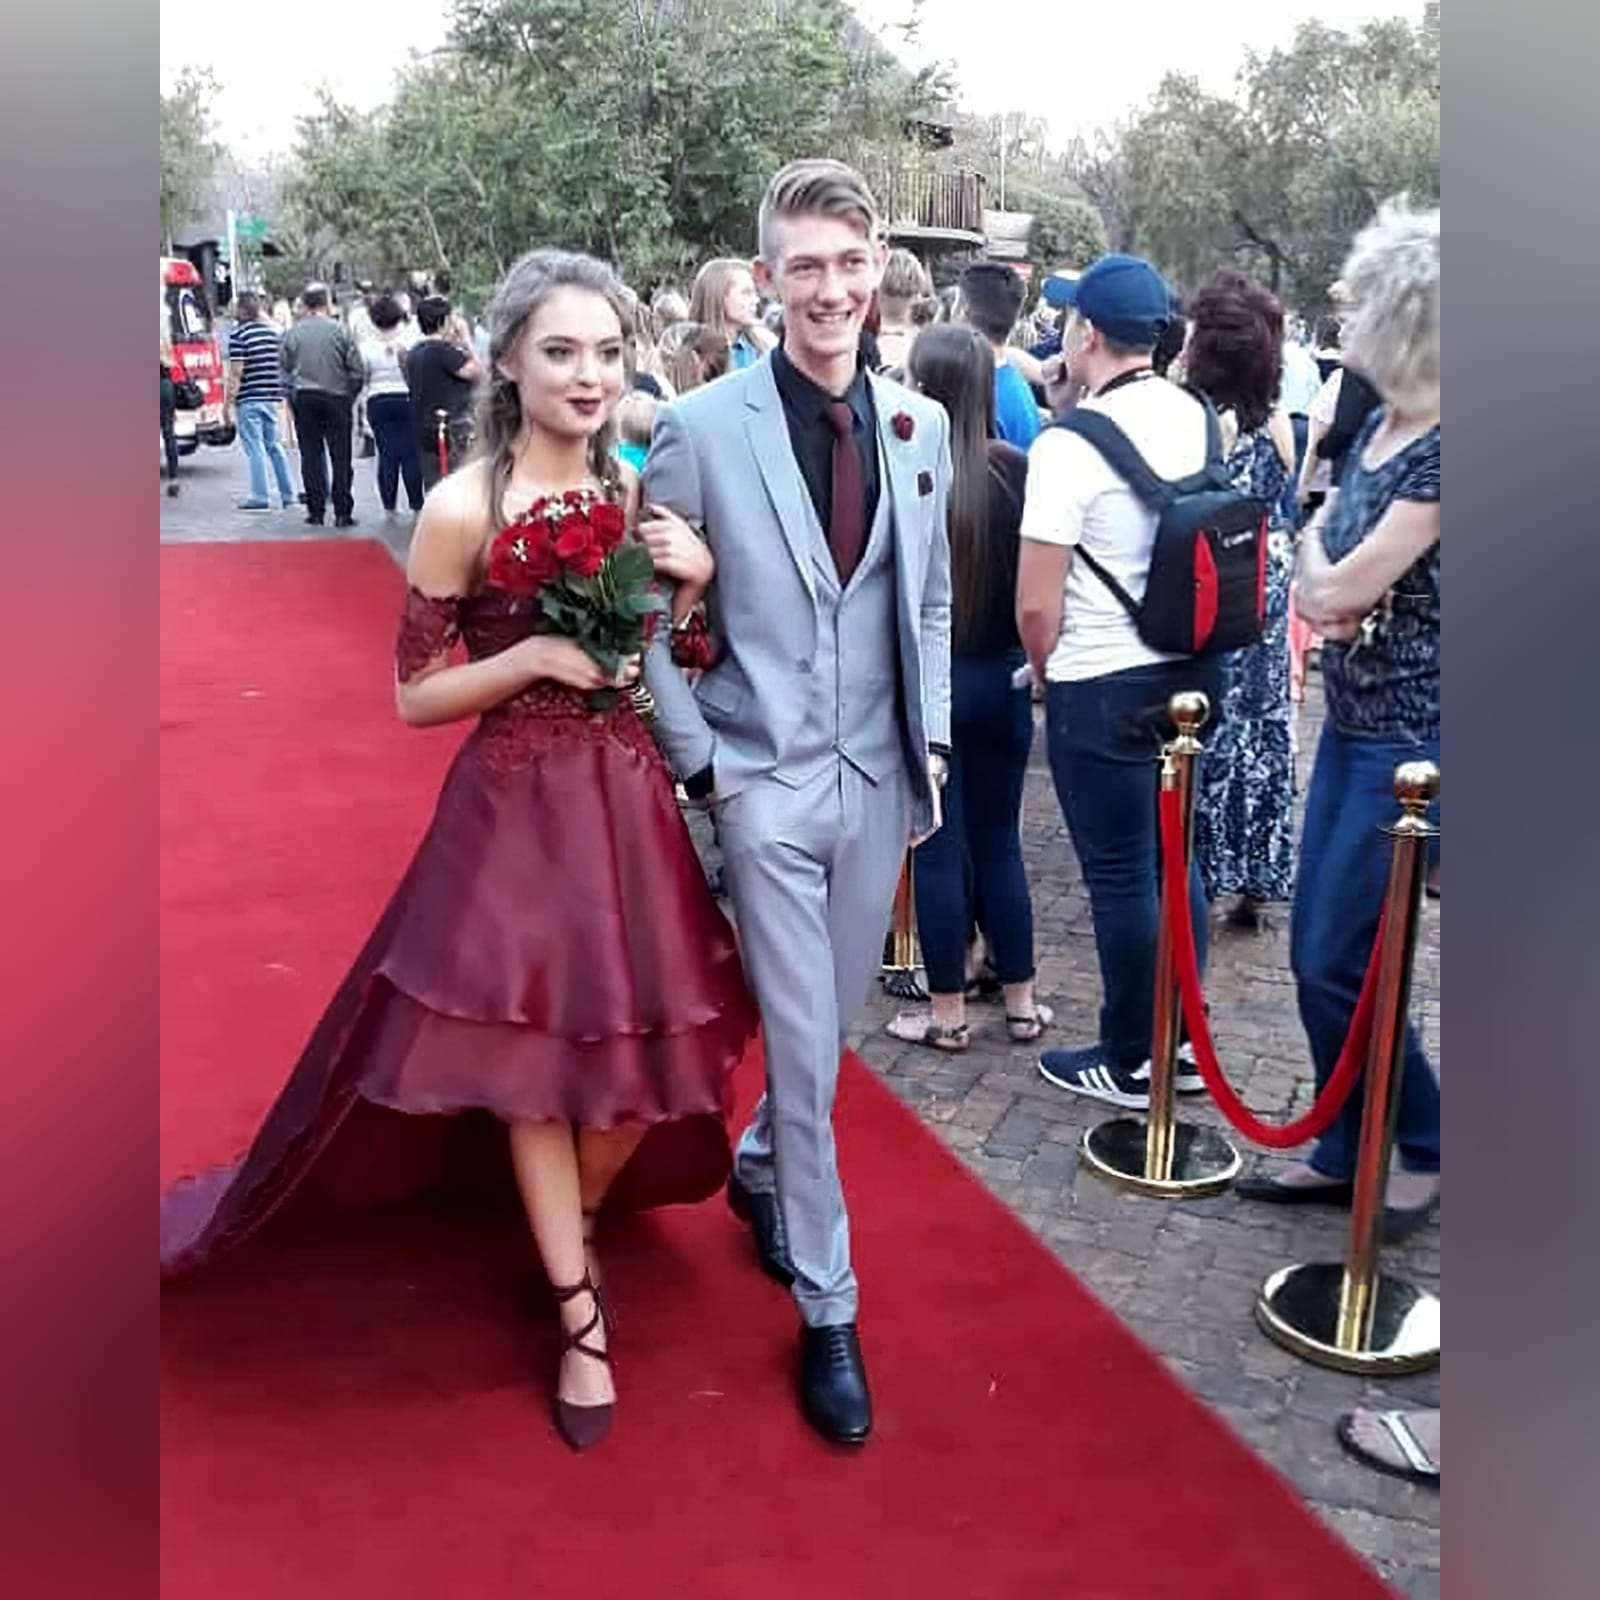 Dark red high low evening dress 1 the perfect dark red evening dress for your prom night if you want to look elegant yet adorable. With a lace bodice and a double layer hi - lo flowy bottom for a slight dramatic effect.